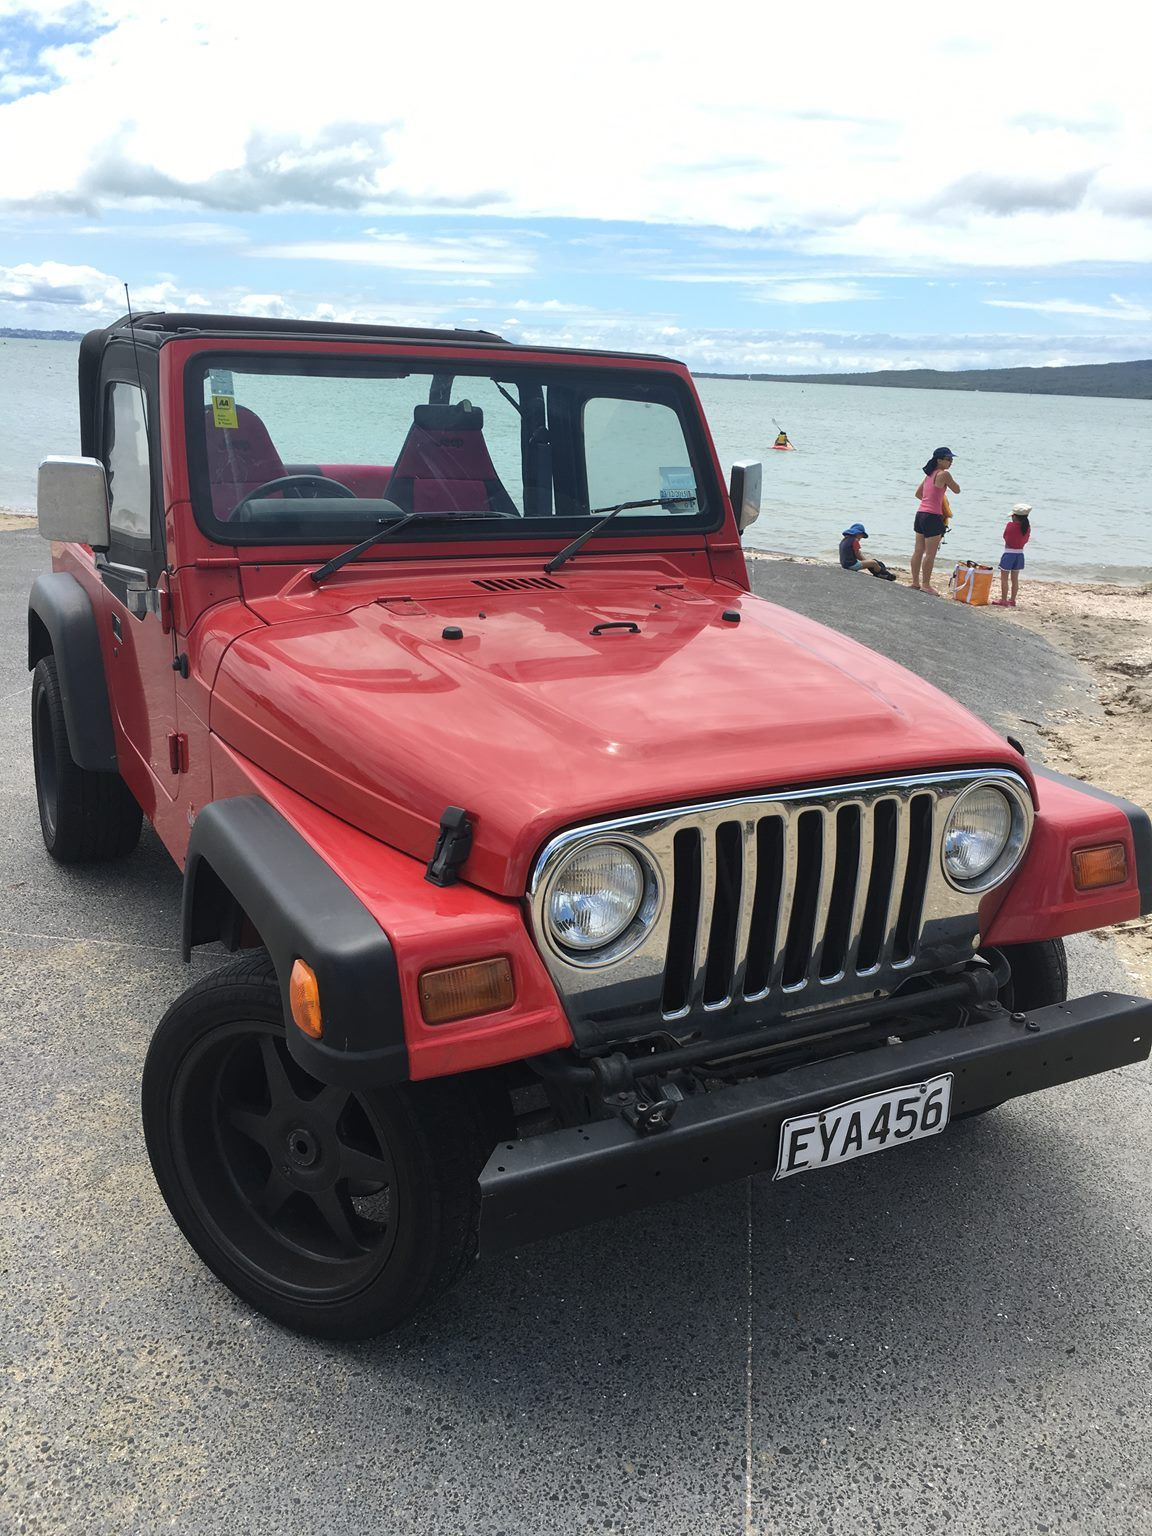 Macgyver Style Red Jeep Wrangler For Sale Video In Listing Is